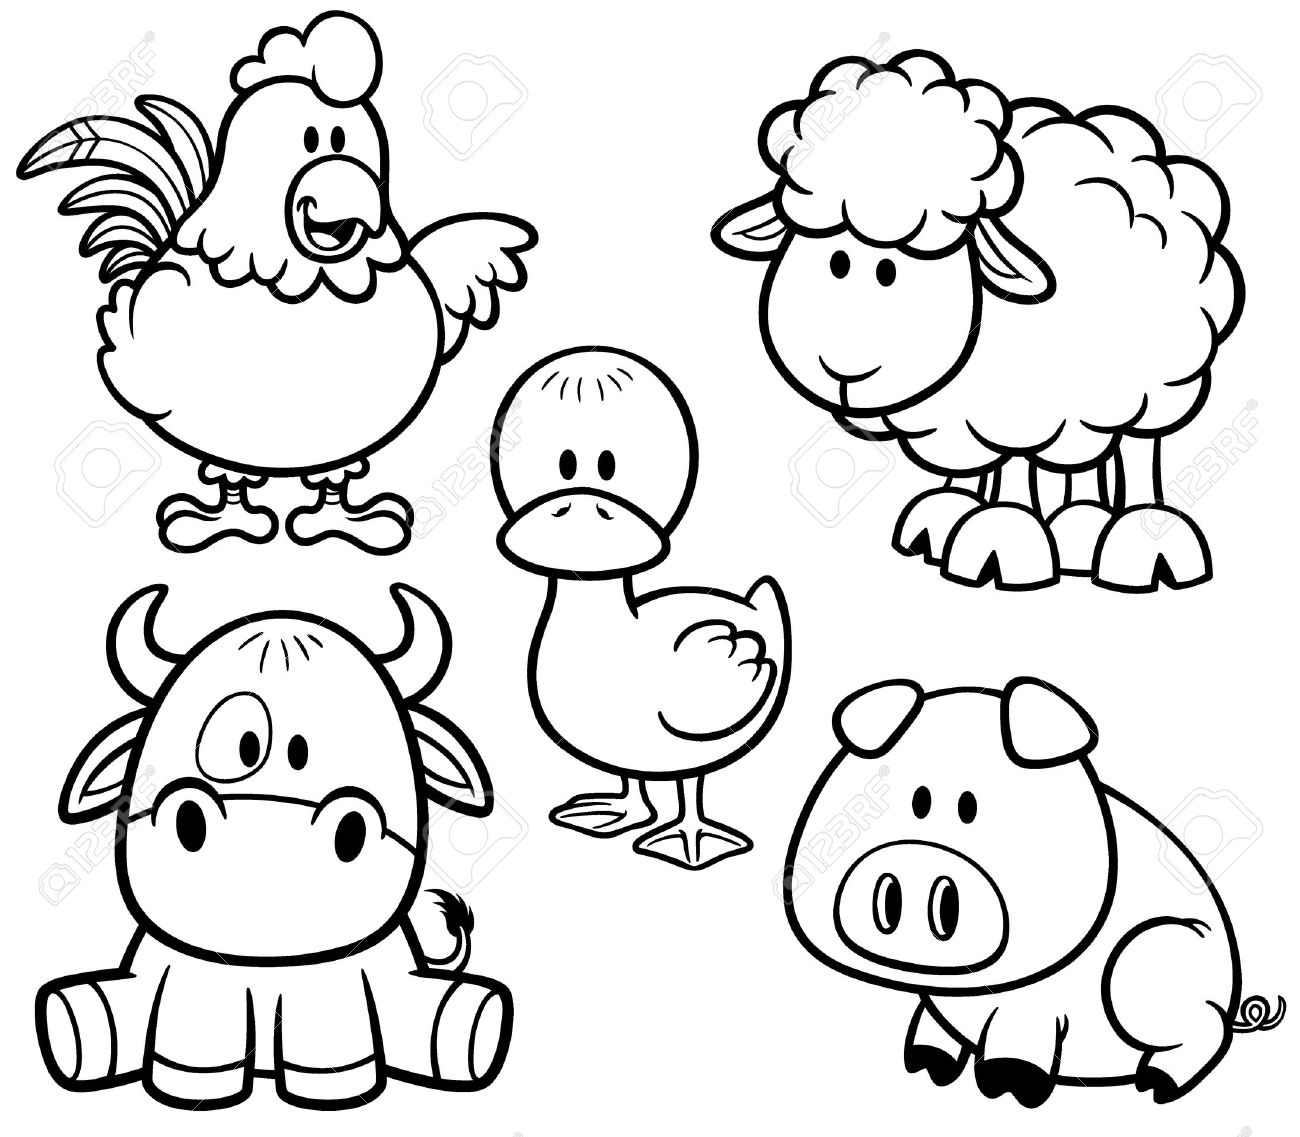 free animal coloring pages for kids introduce kids wild animals using animals coloring coloring animal free for kids pages